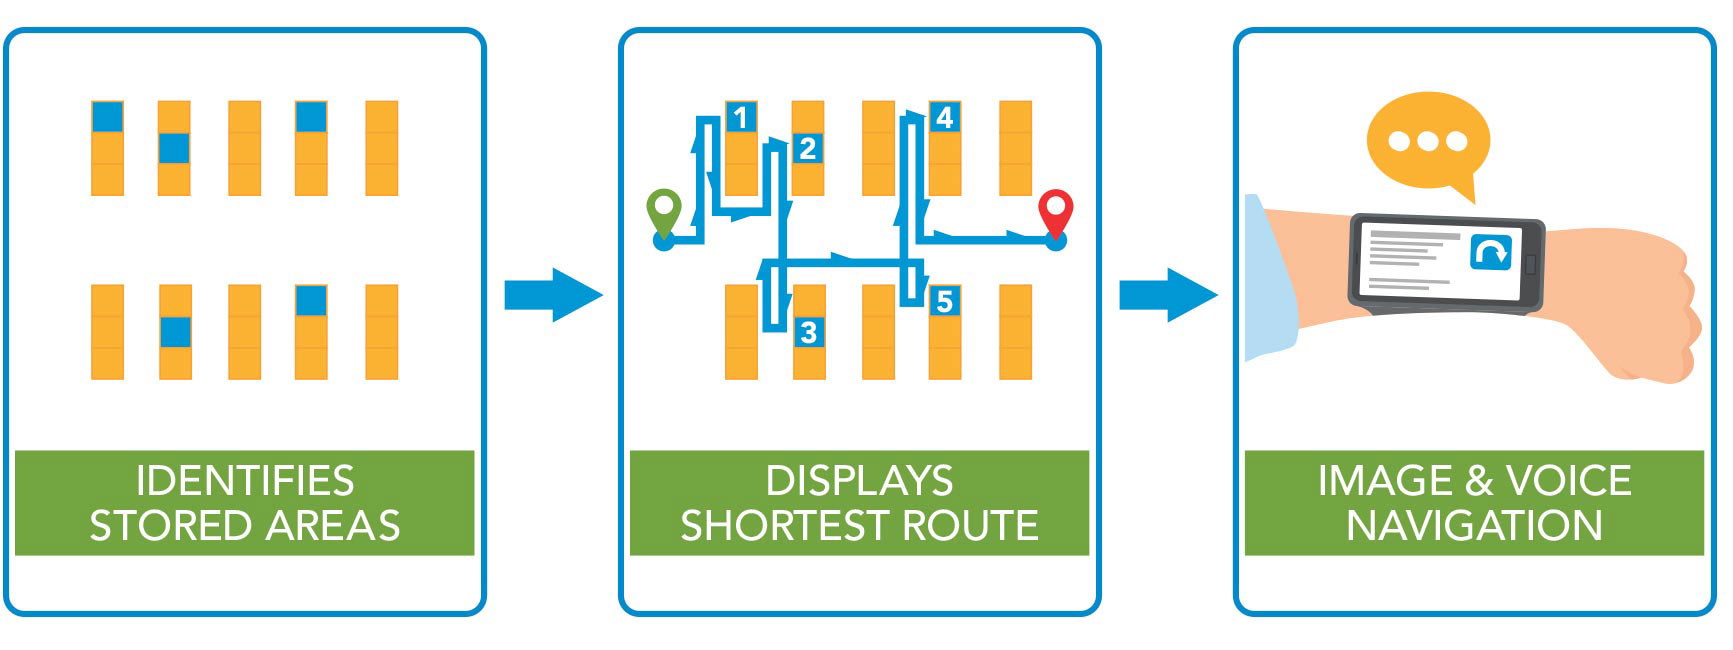 Identifies stored areas > Displays shortest route > Image & voice navigation